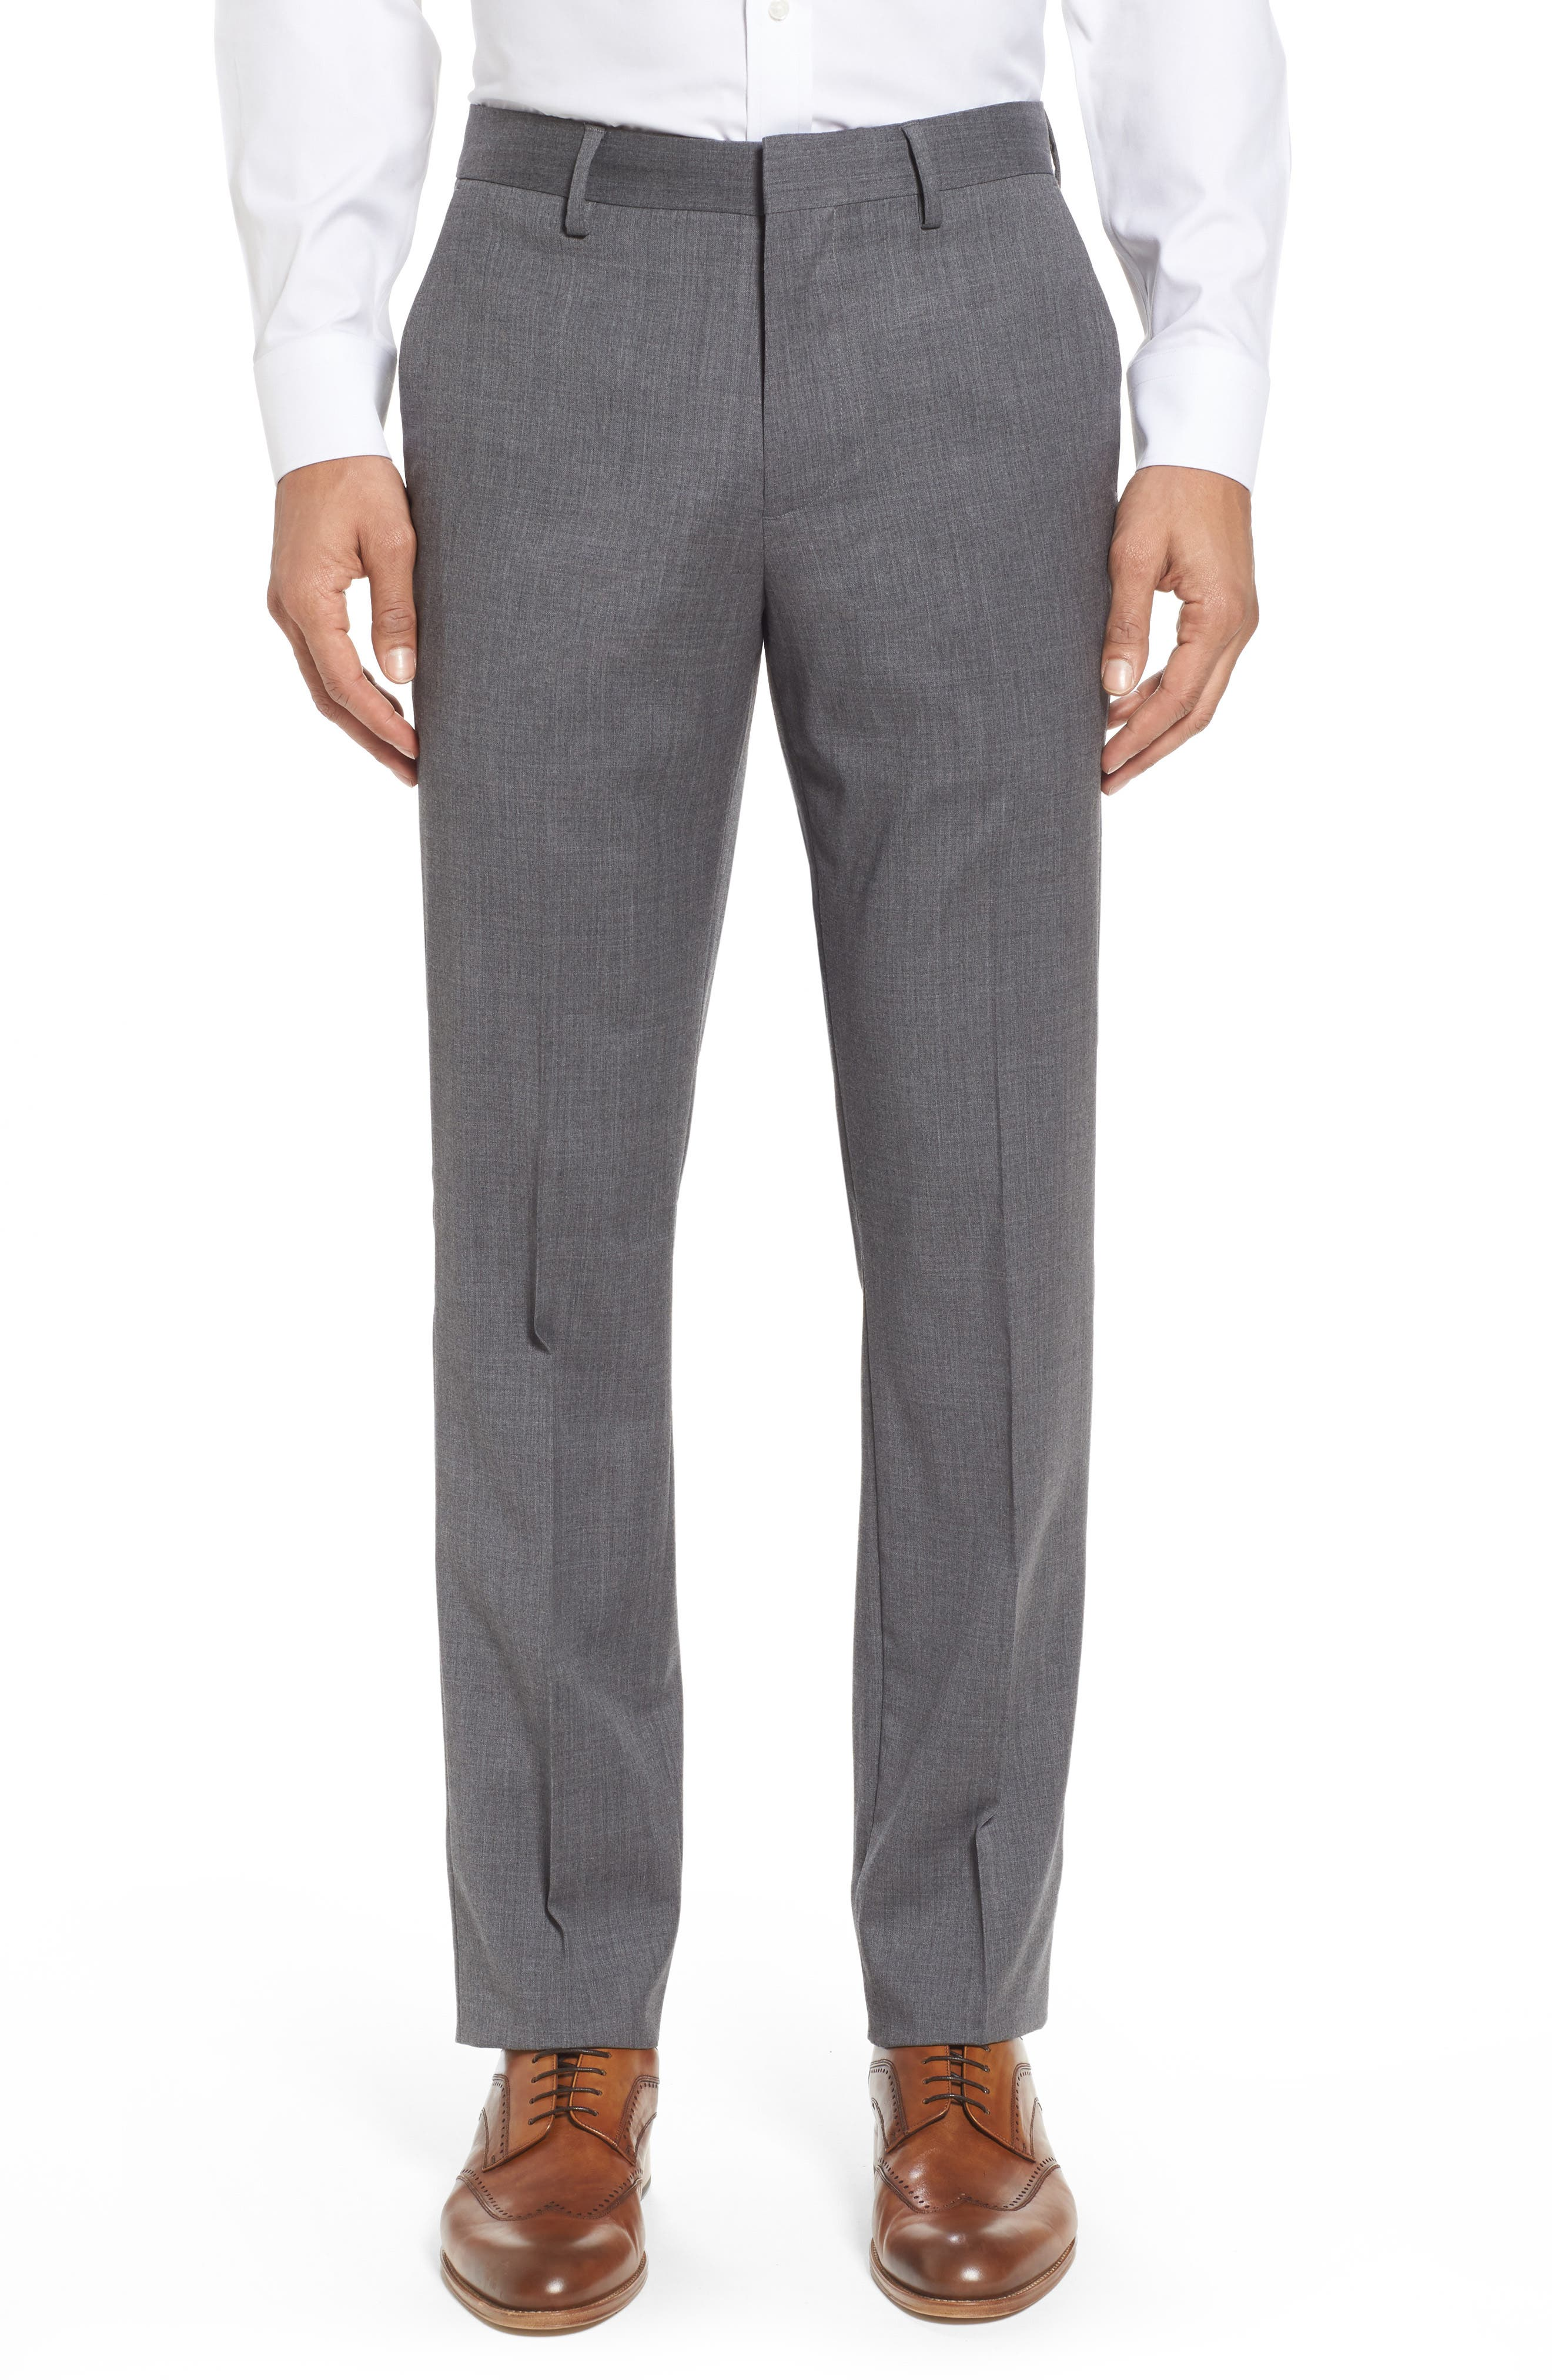 Jetsetter Slim Fit Flat Front Stretch Wool Trousers,                             Main thumbnail 1, color,                             Grey